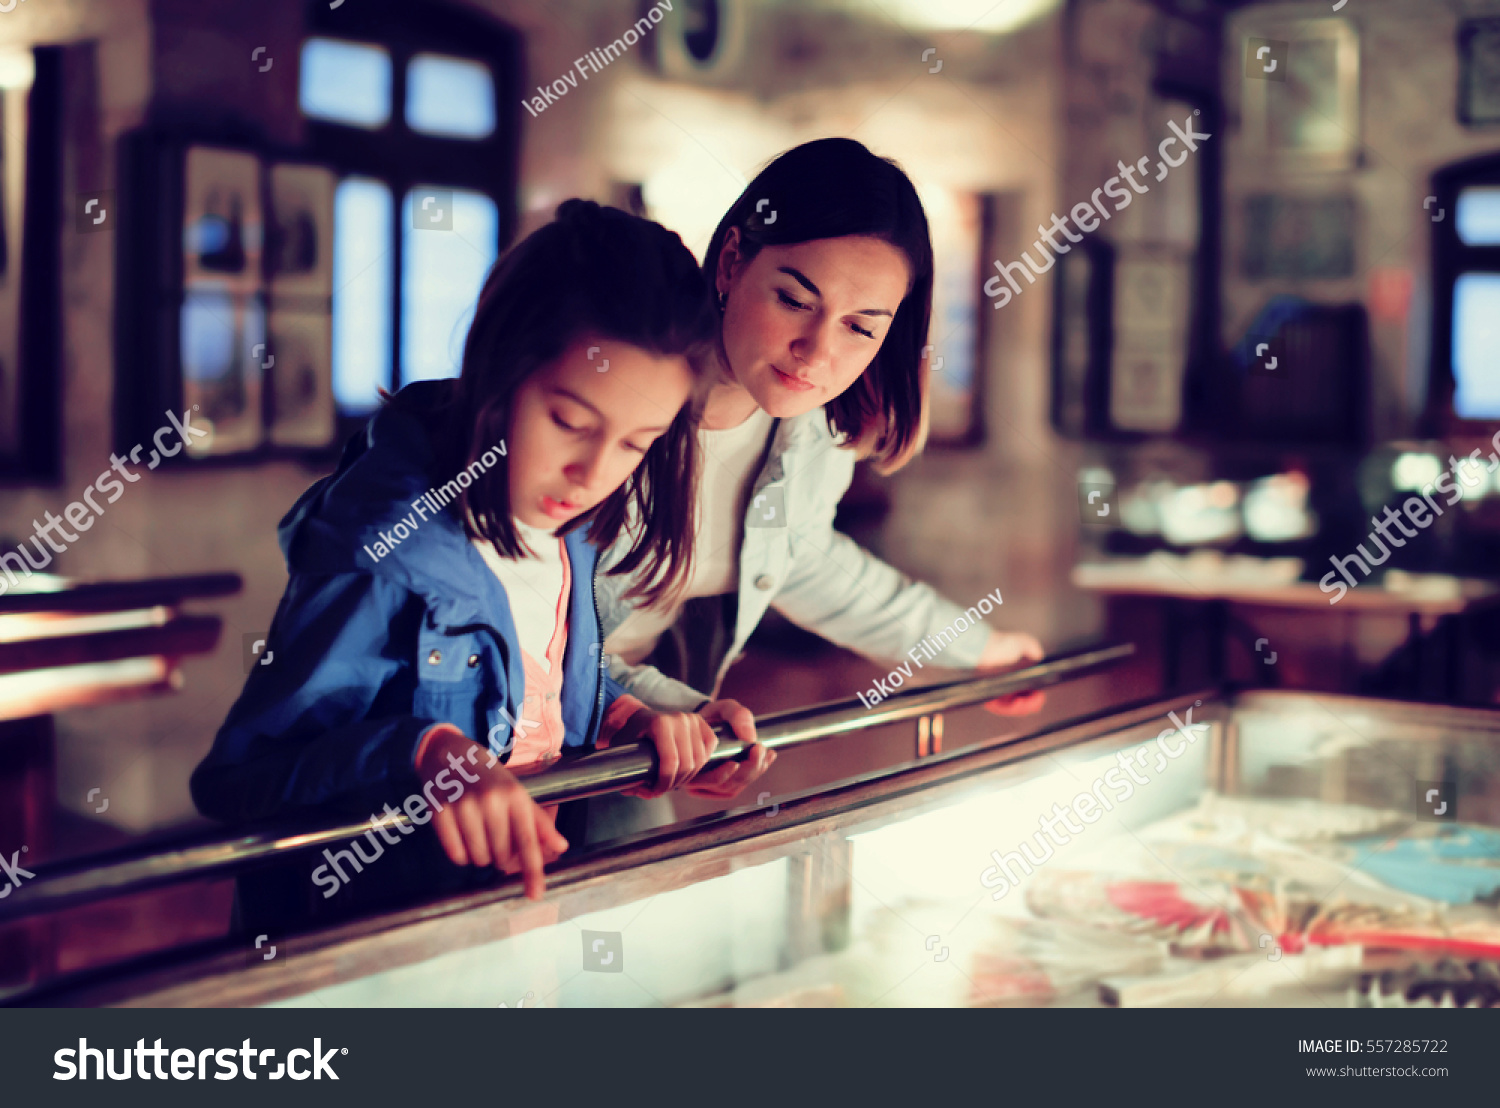 Attractive mother and daughter exploring expositions of previous centuries in museum. Focus on the woman #557285722